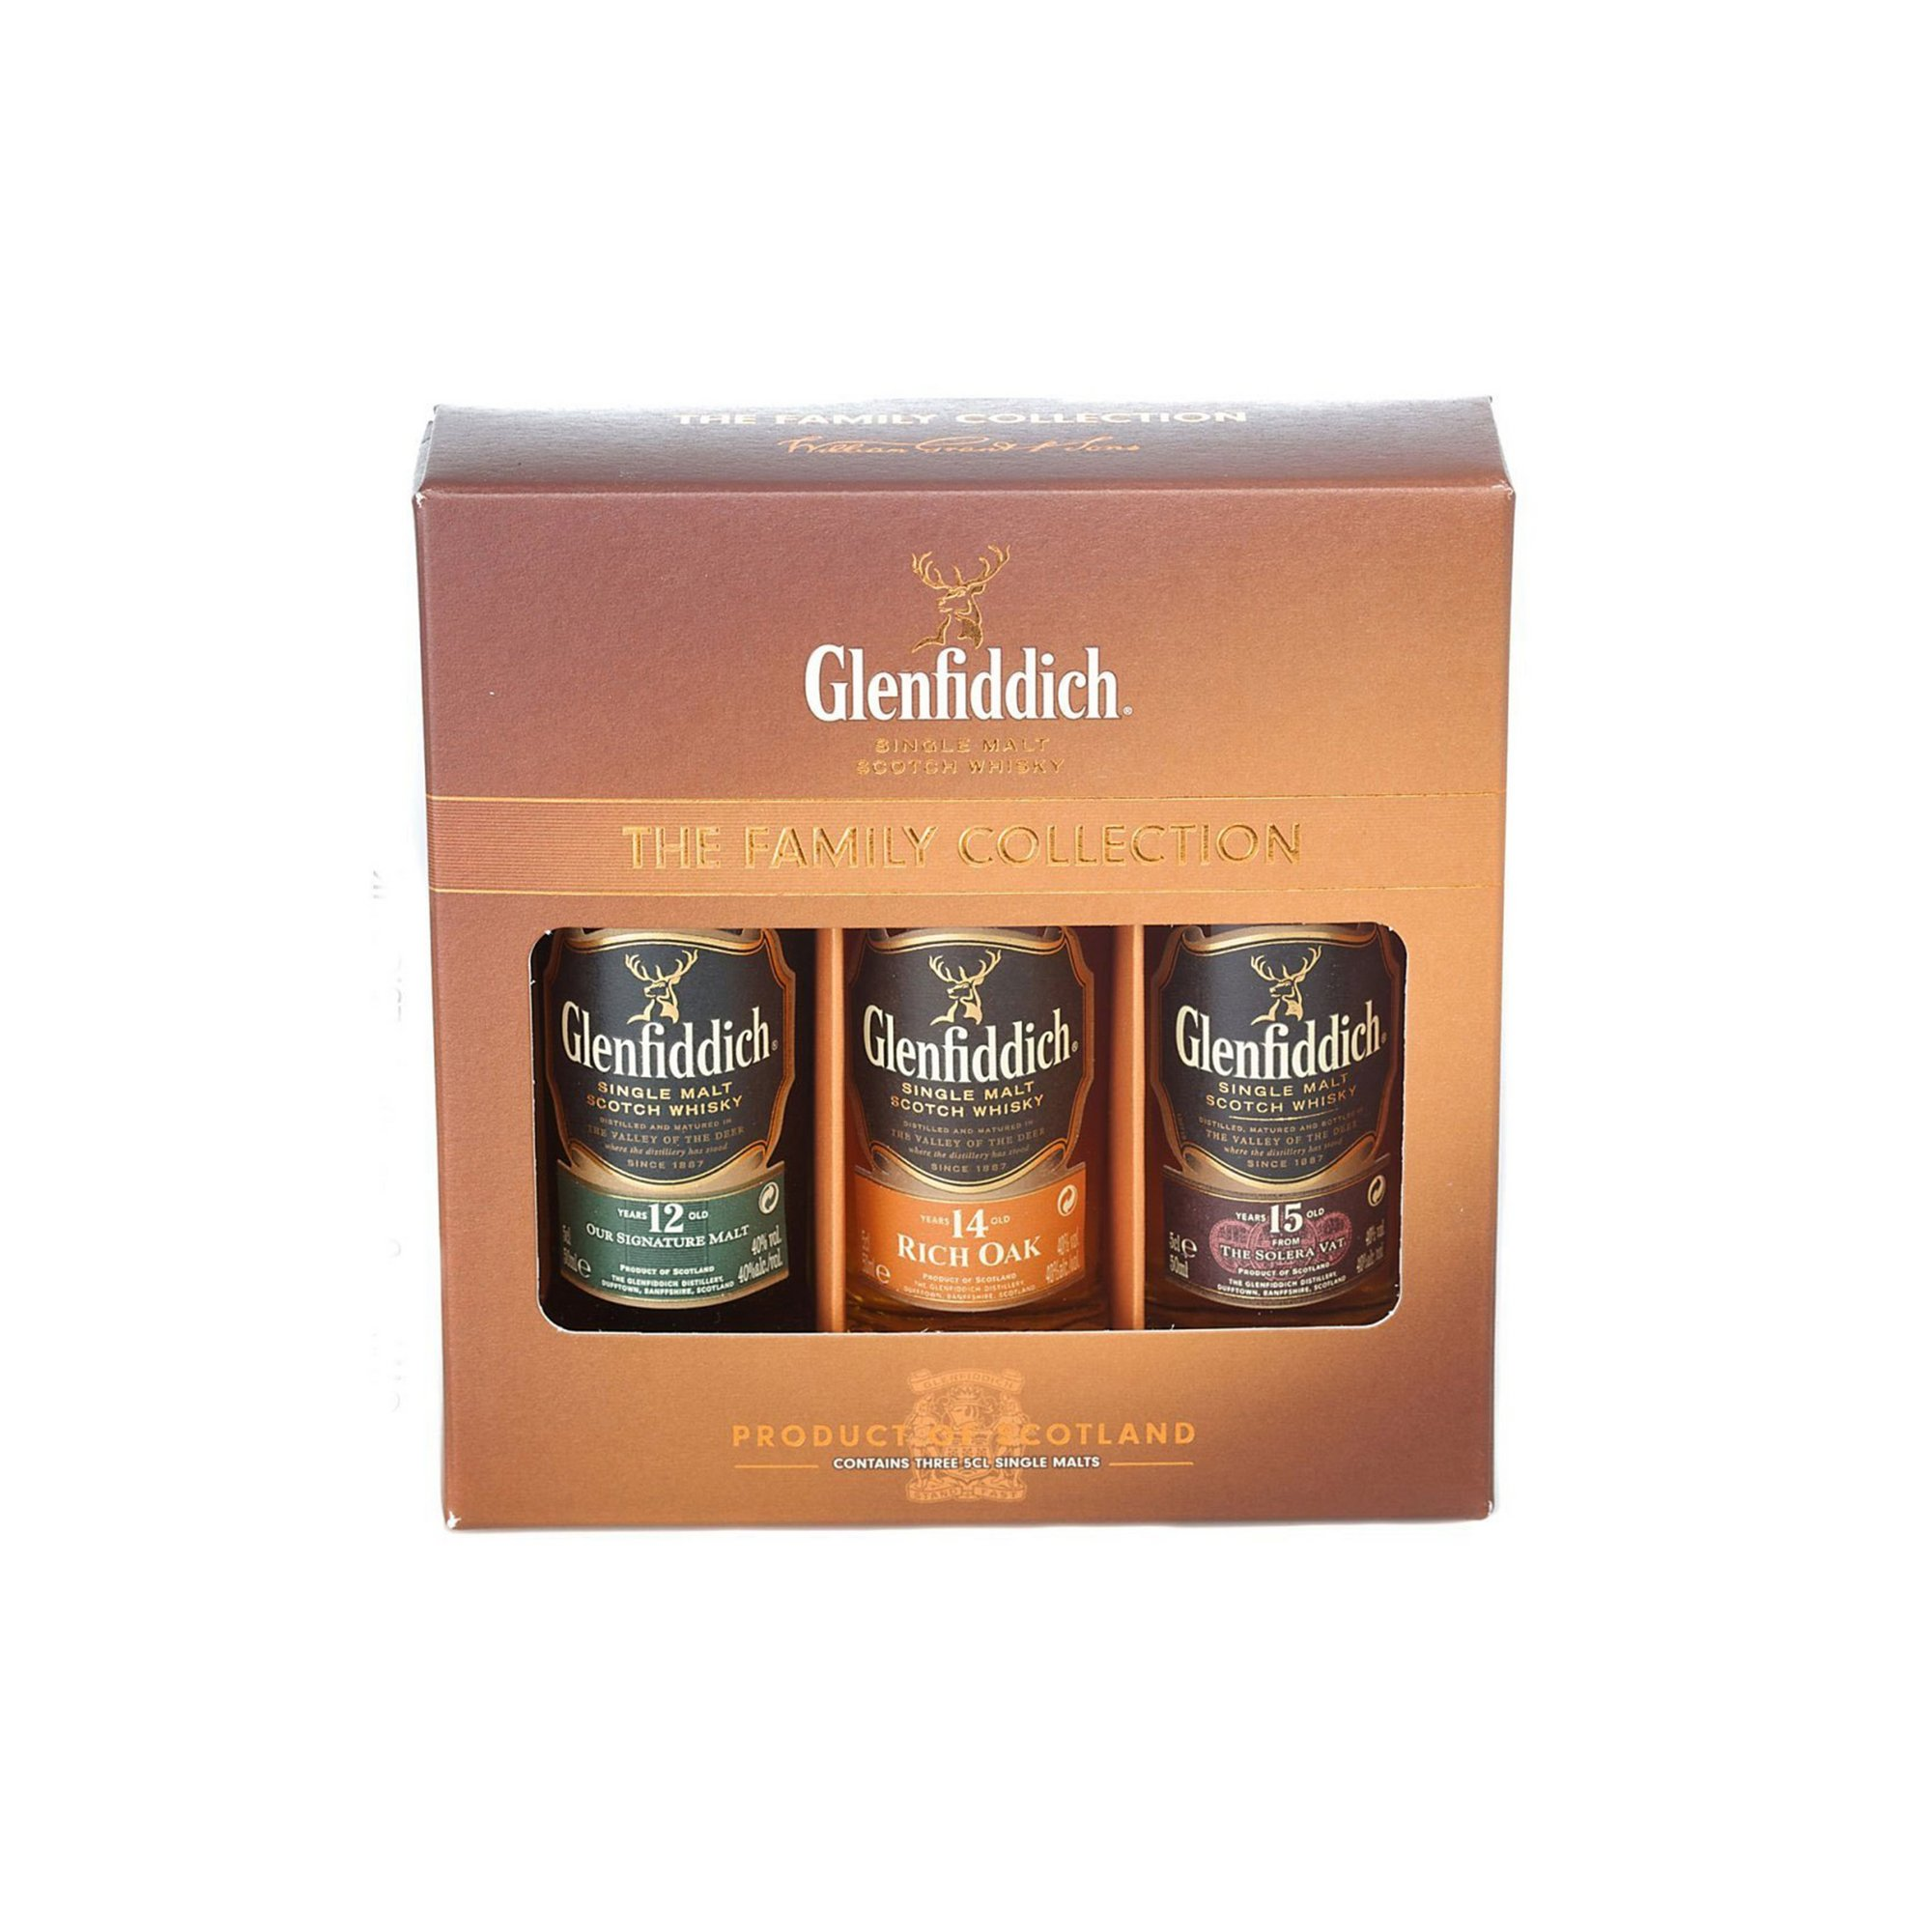 Image of Glenfiddich The Family Collection Scotch Whisky Gift Set